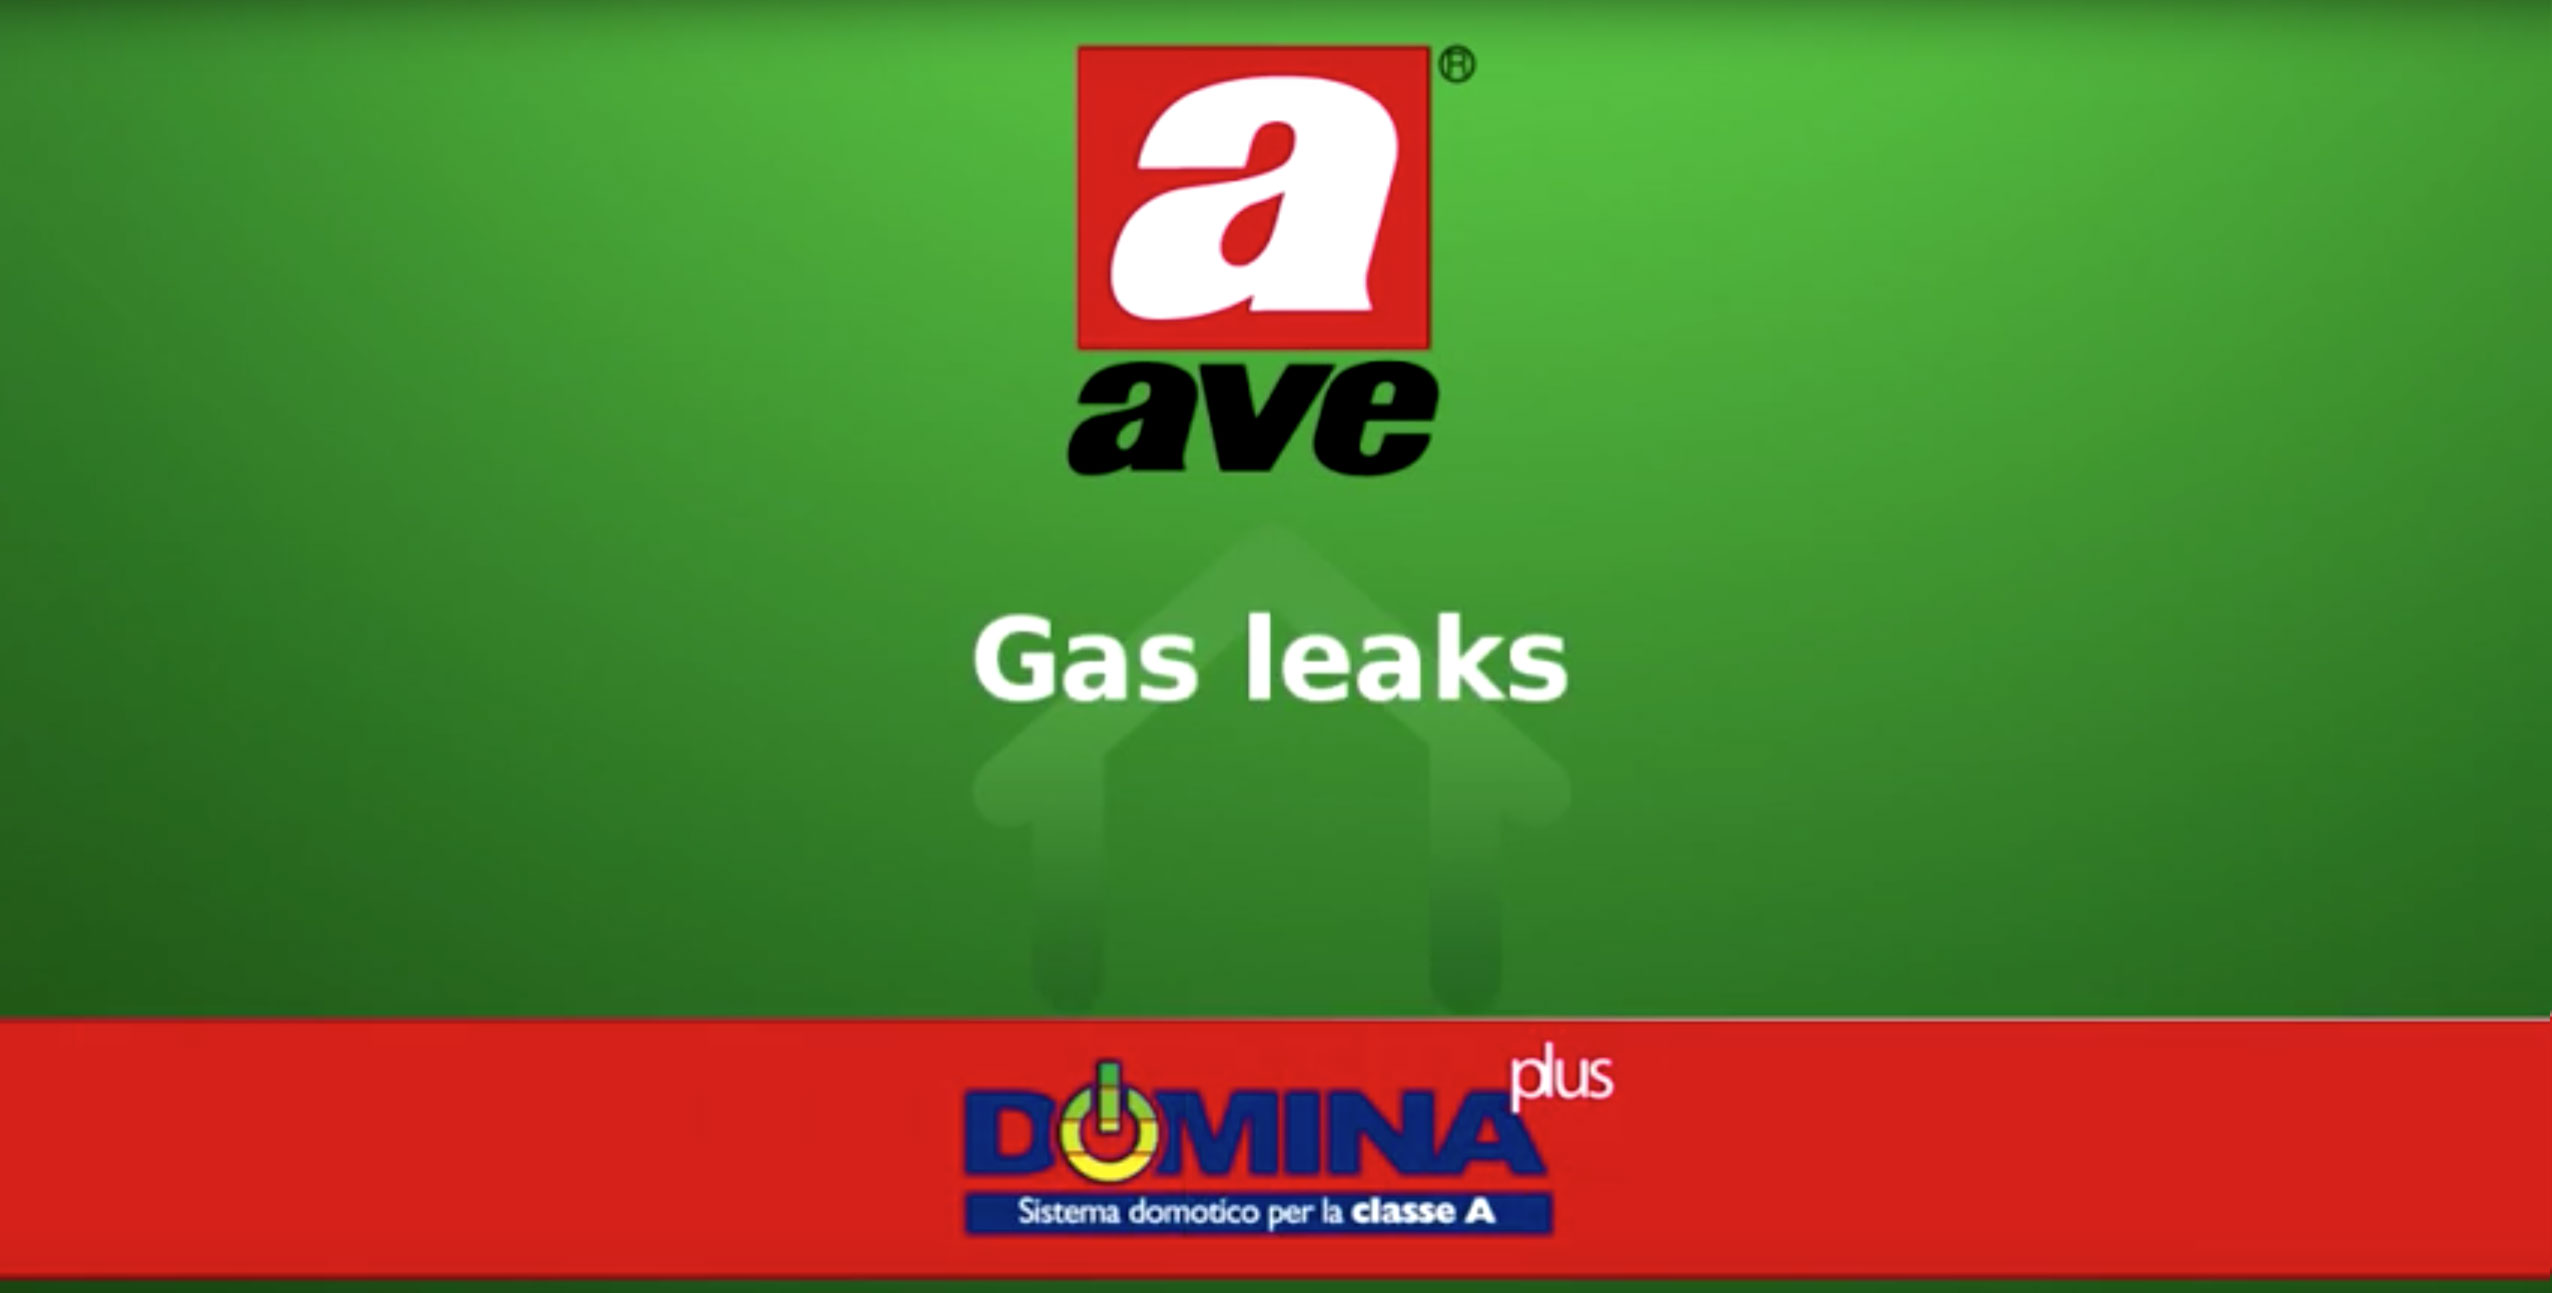 Home automation AVE DOMINA plus – Gas leaks video